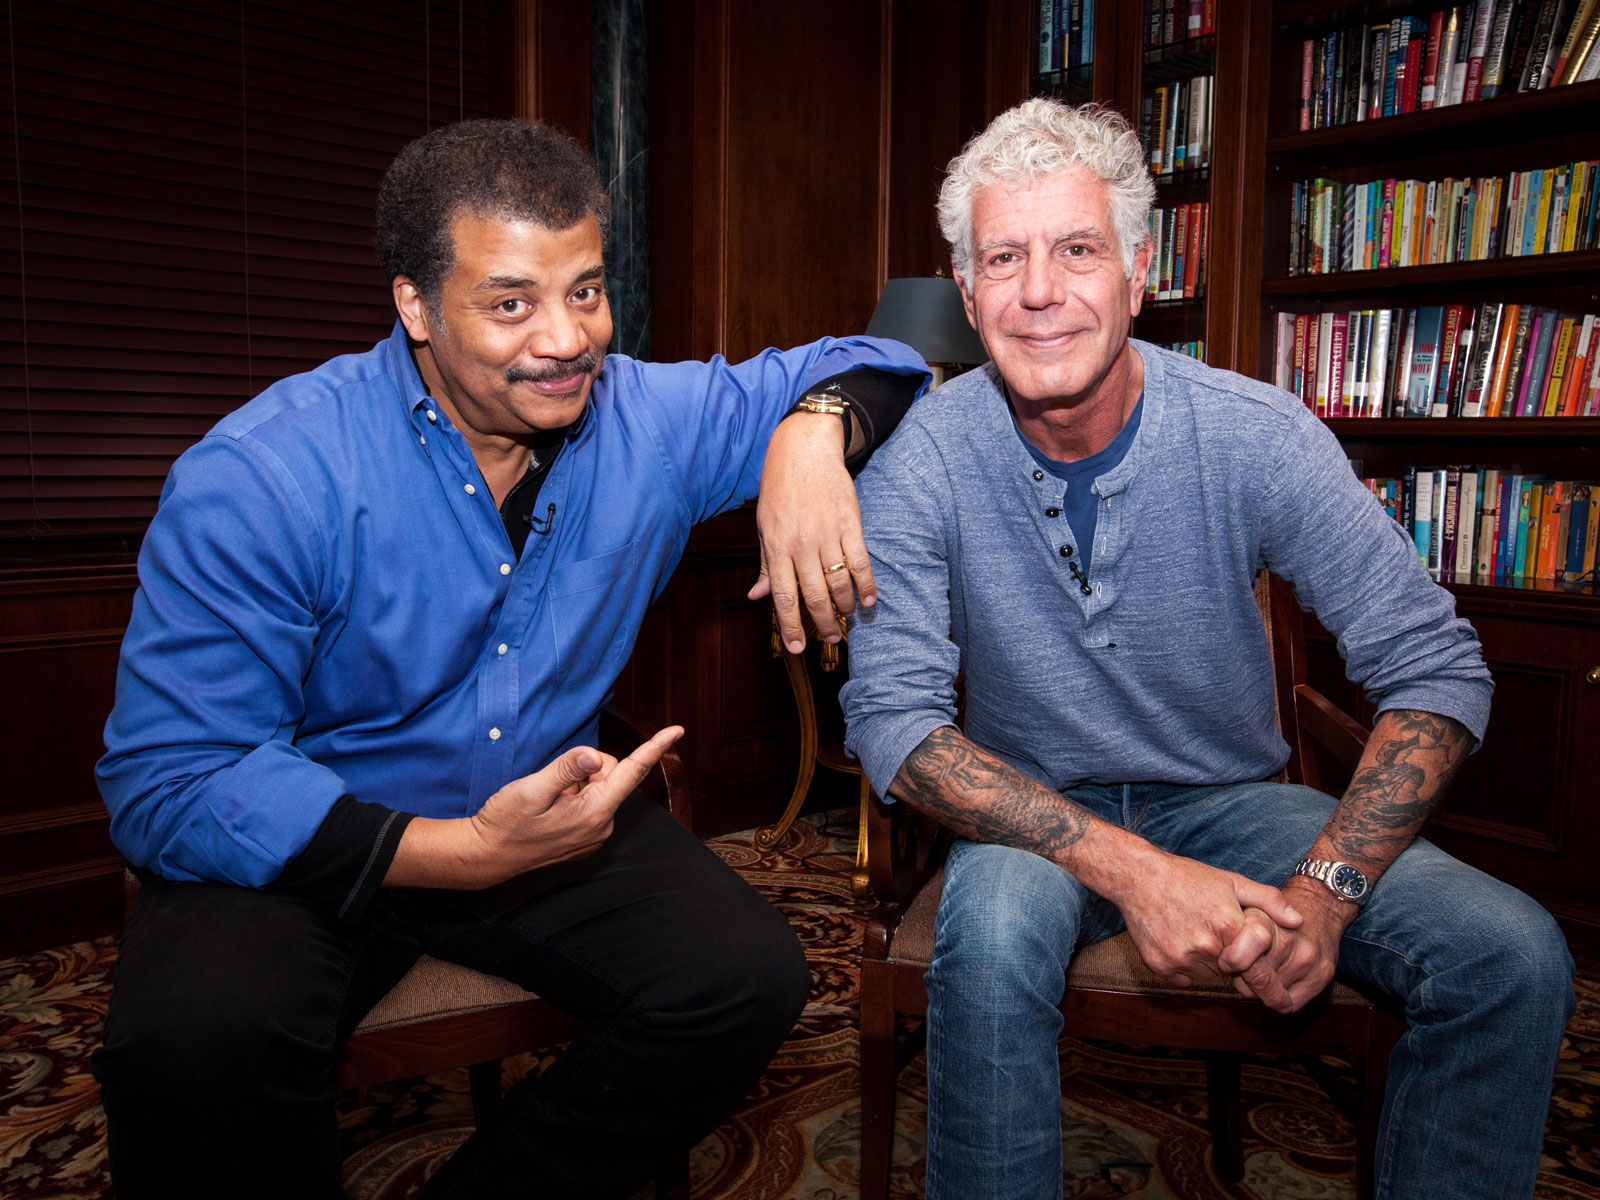 Watch Anthony Bourdain and Neil deGrasse Tyson Discuss Science, Space, and Finding Food's 'Sweet Spot'